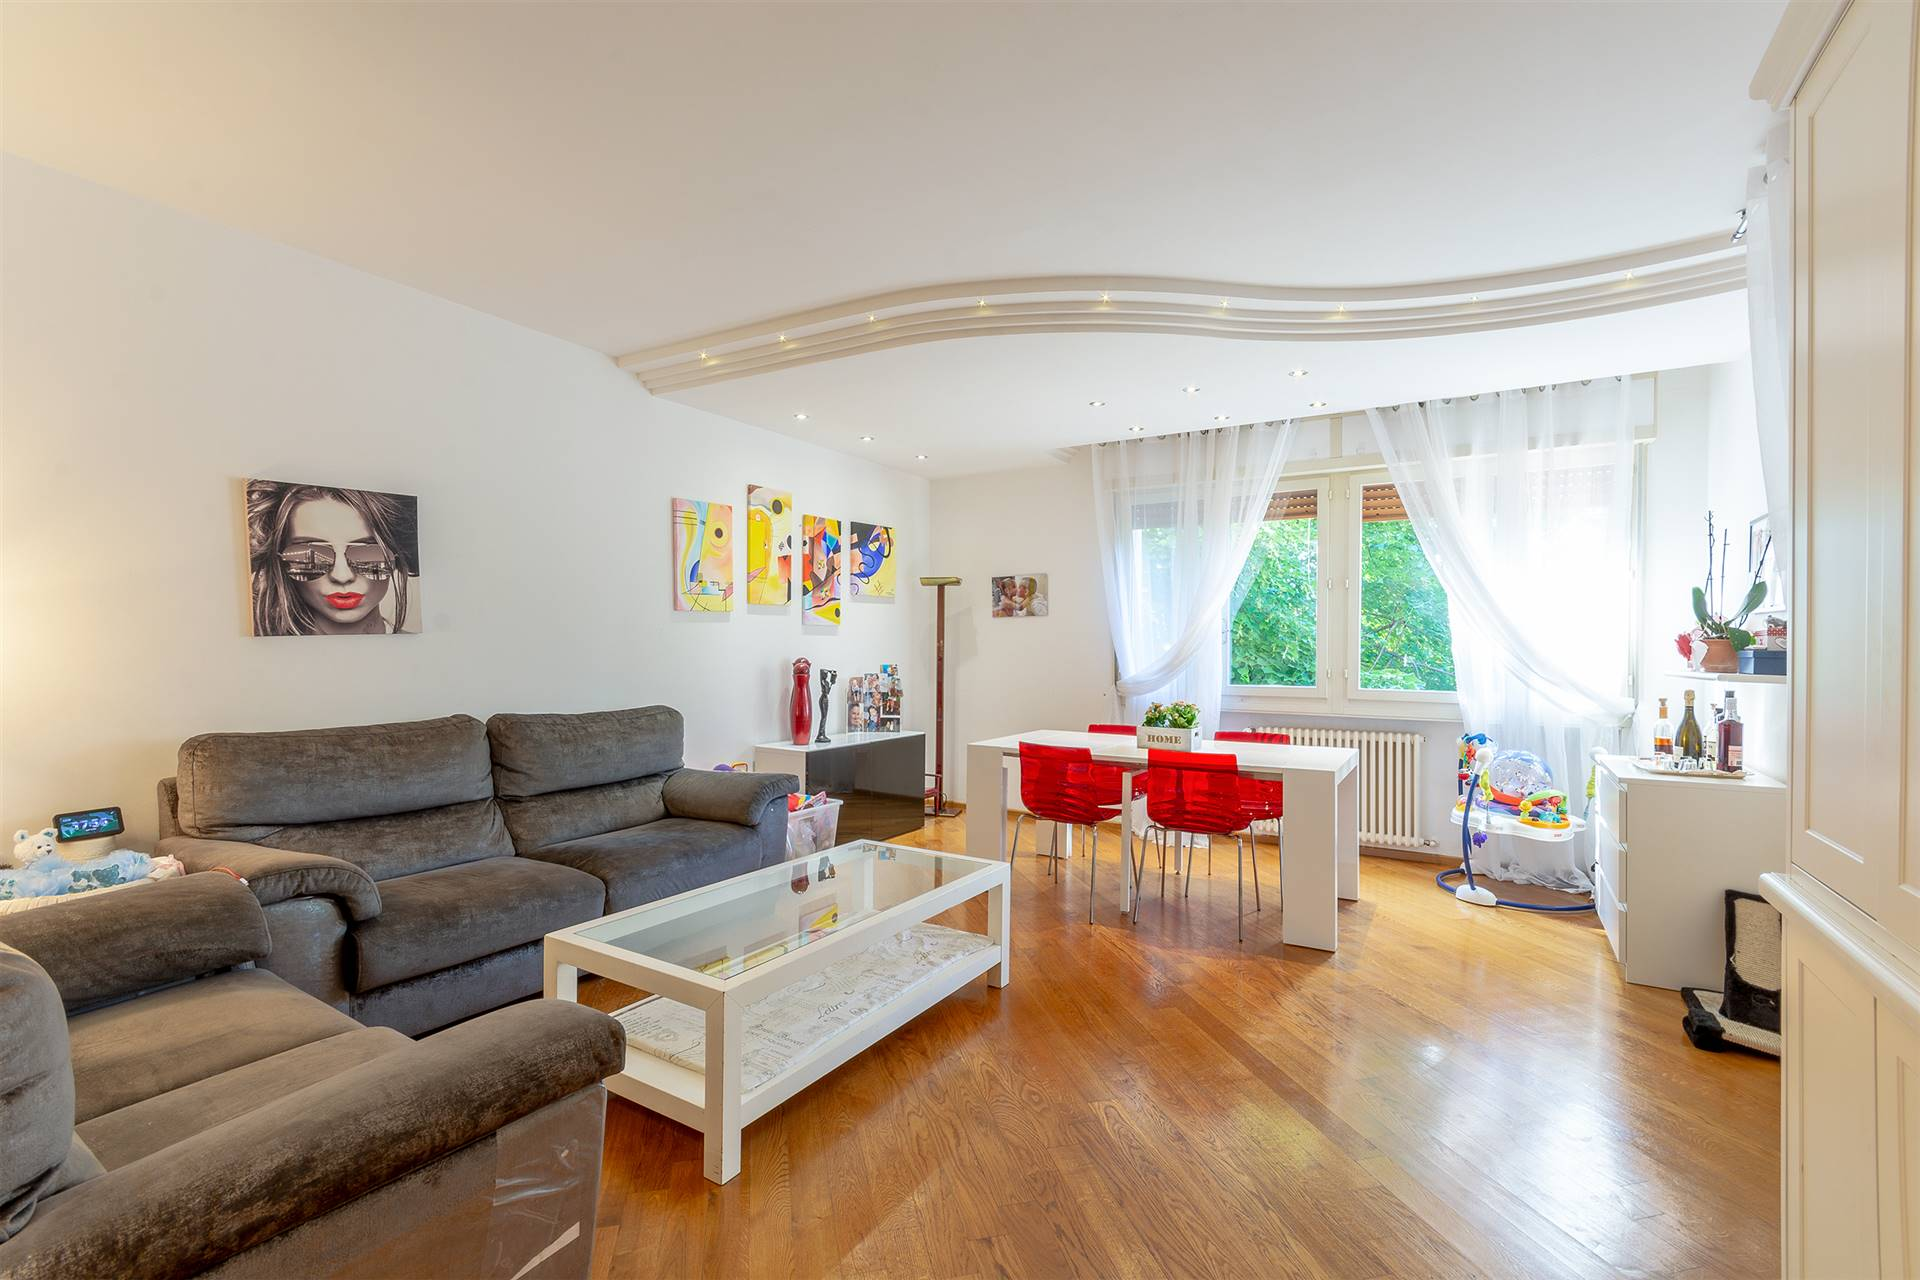 OLMO, SESTO FIORENTINO, Apartment for sale of 108 Sq. mt., Excellent Condition, Heating Individual heating system, Energetic class: G, placed at 1°